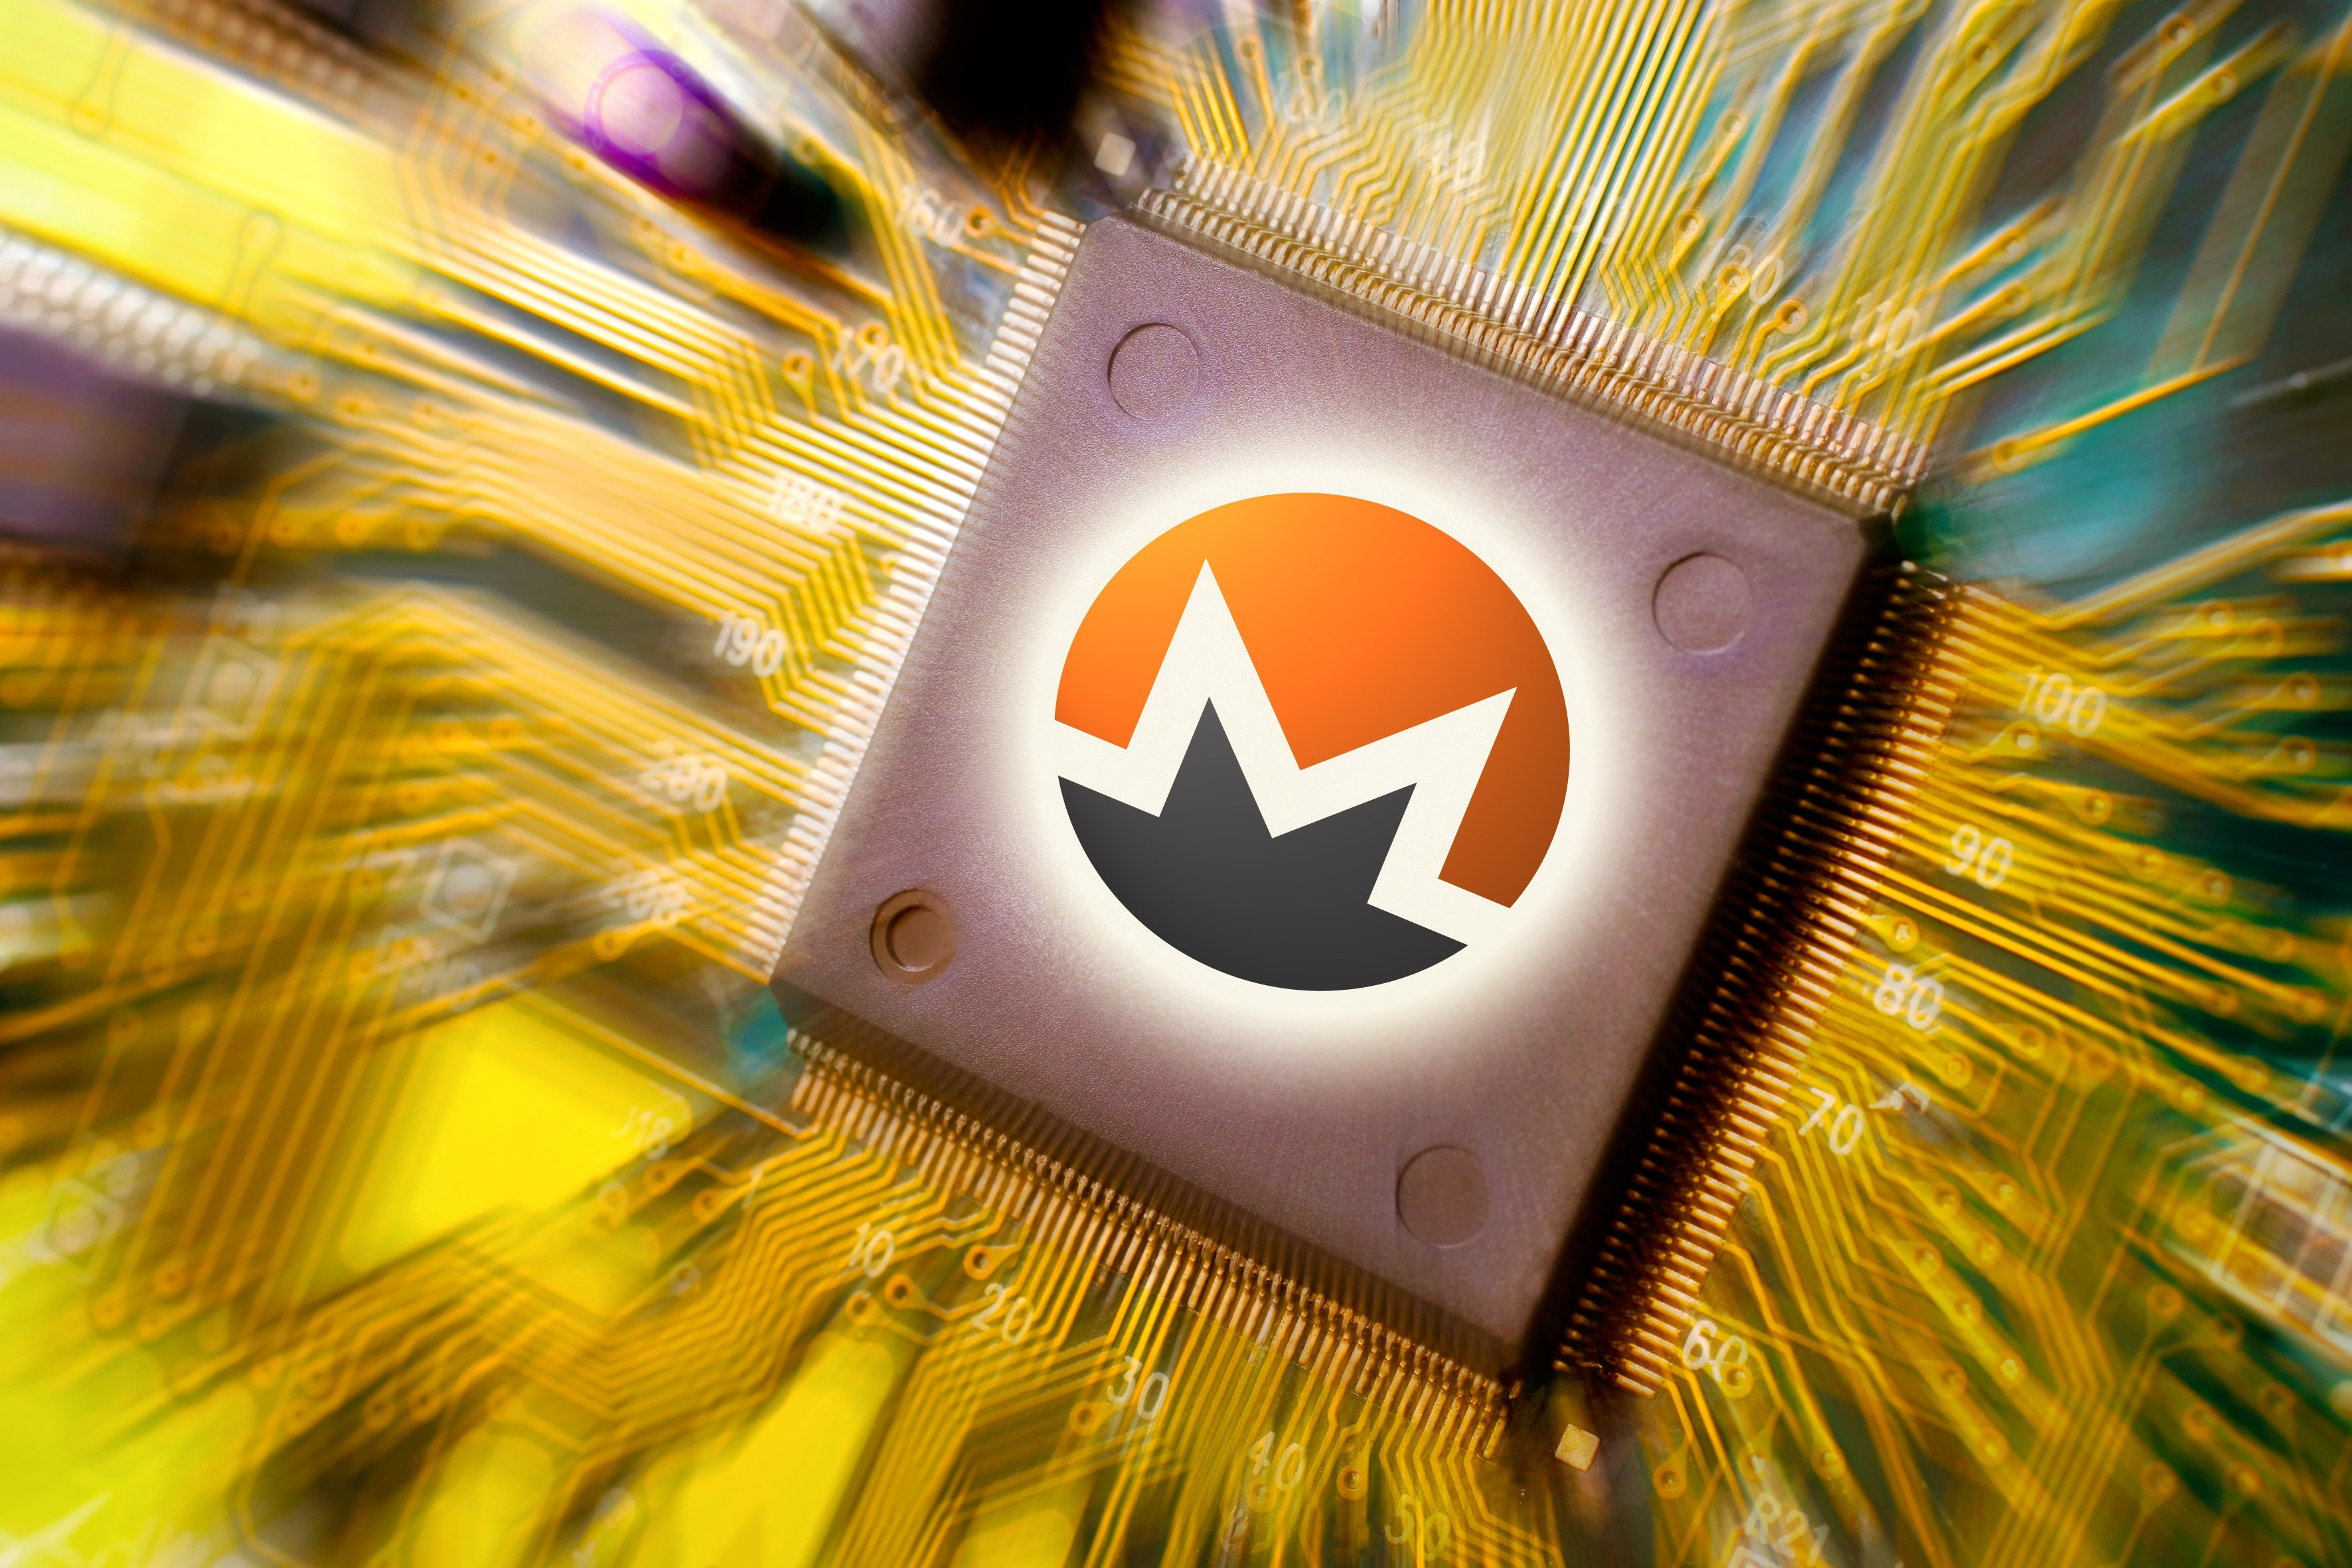 salon uses your pc to mine cryptocurrency